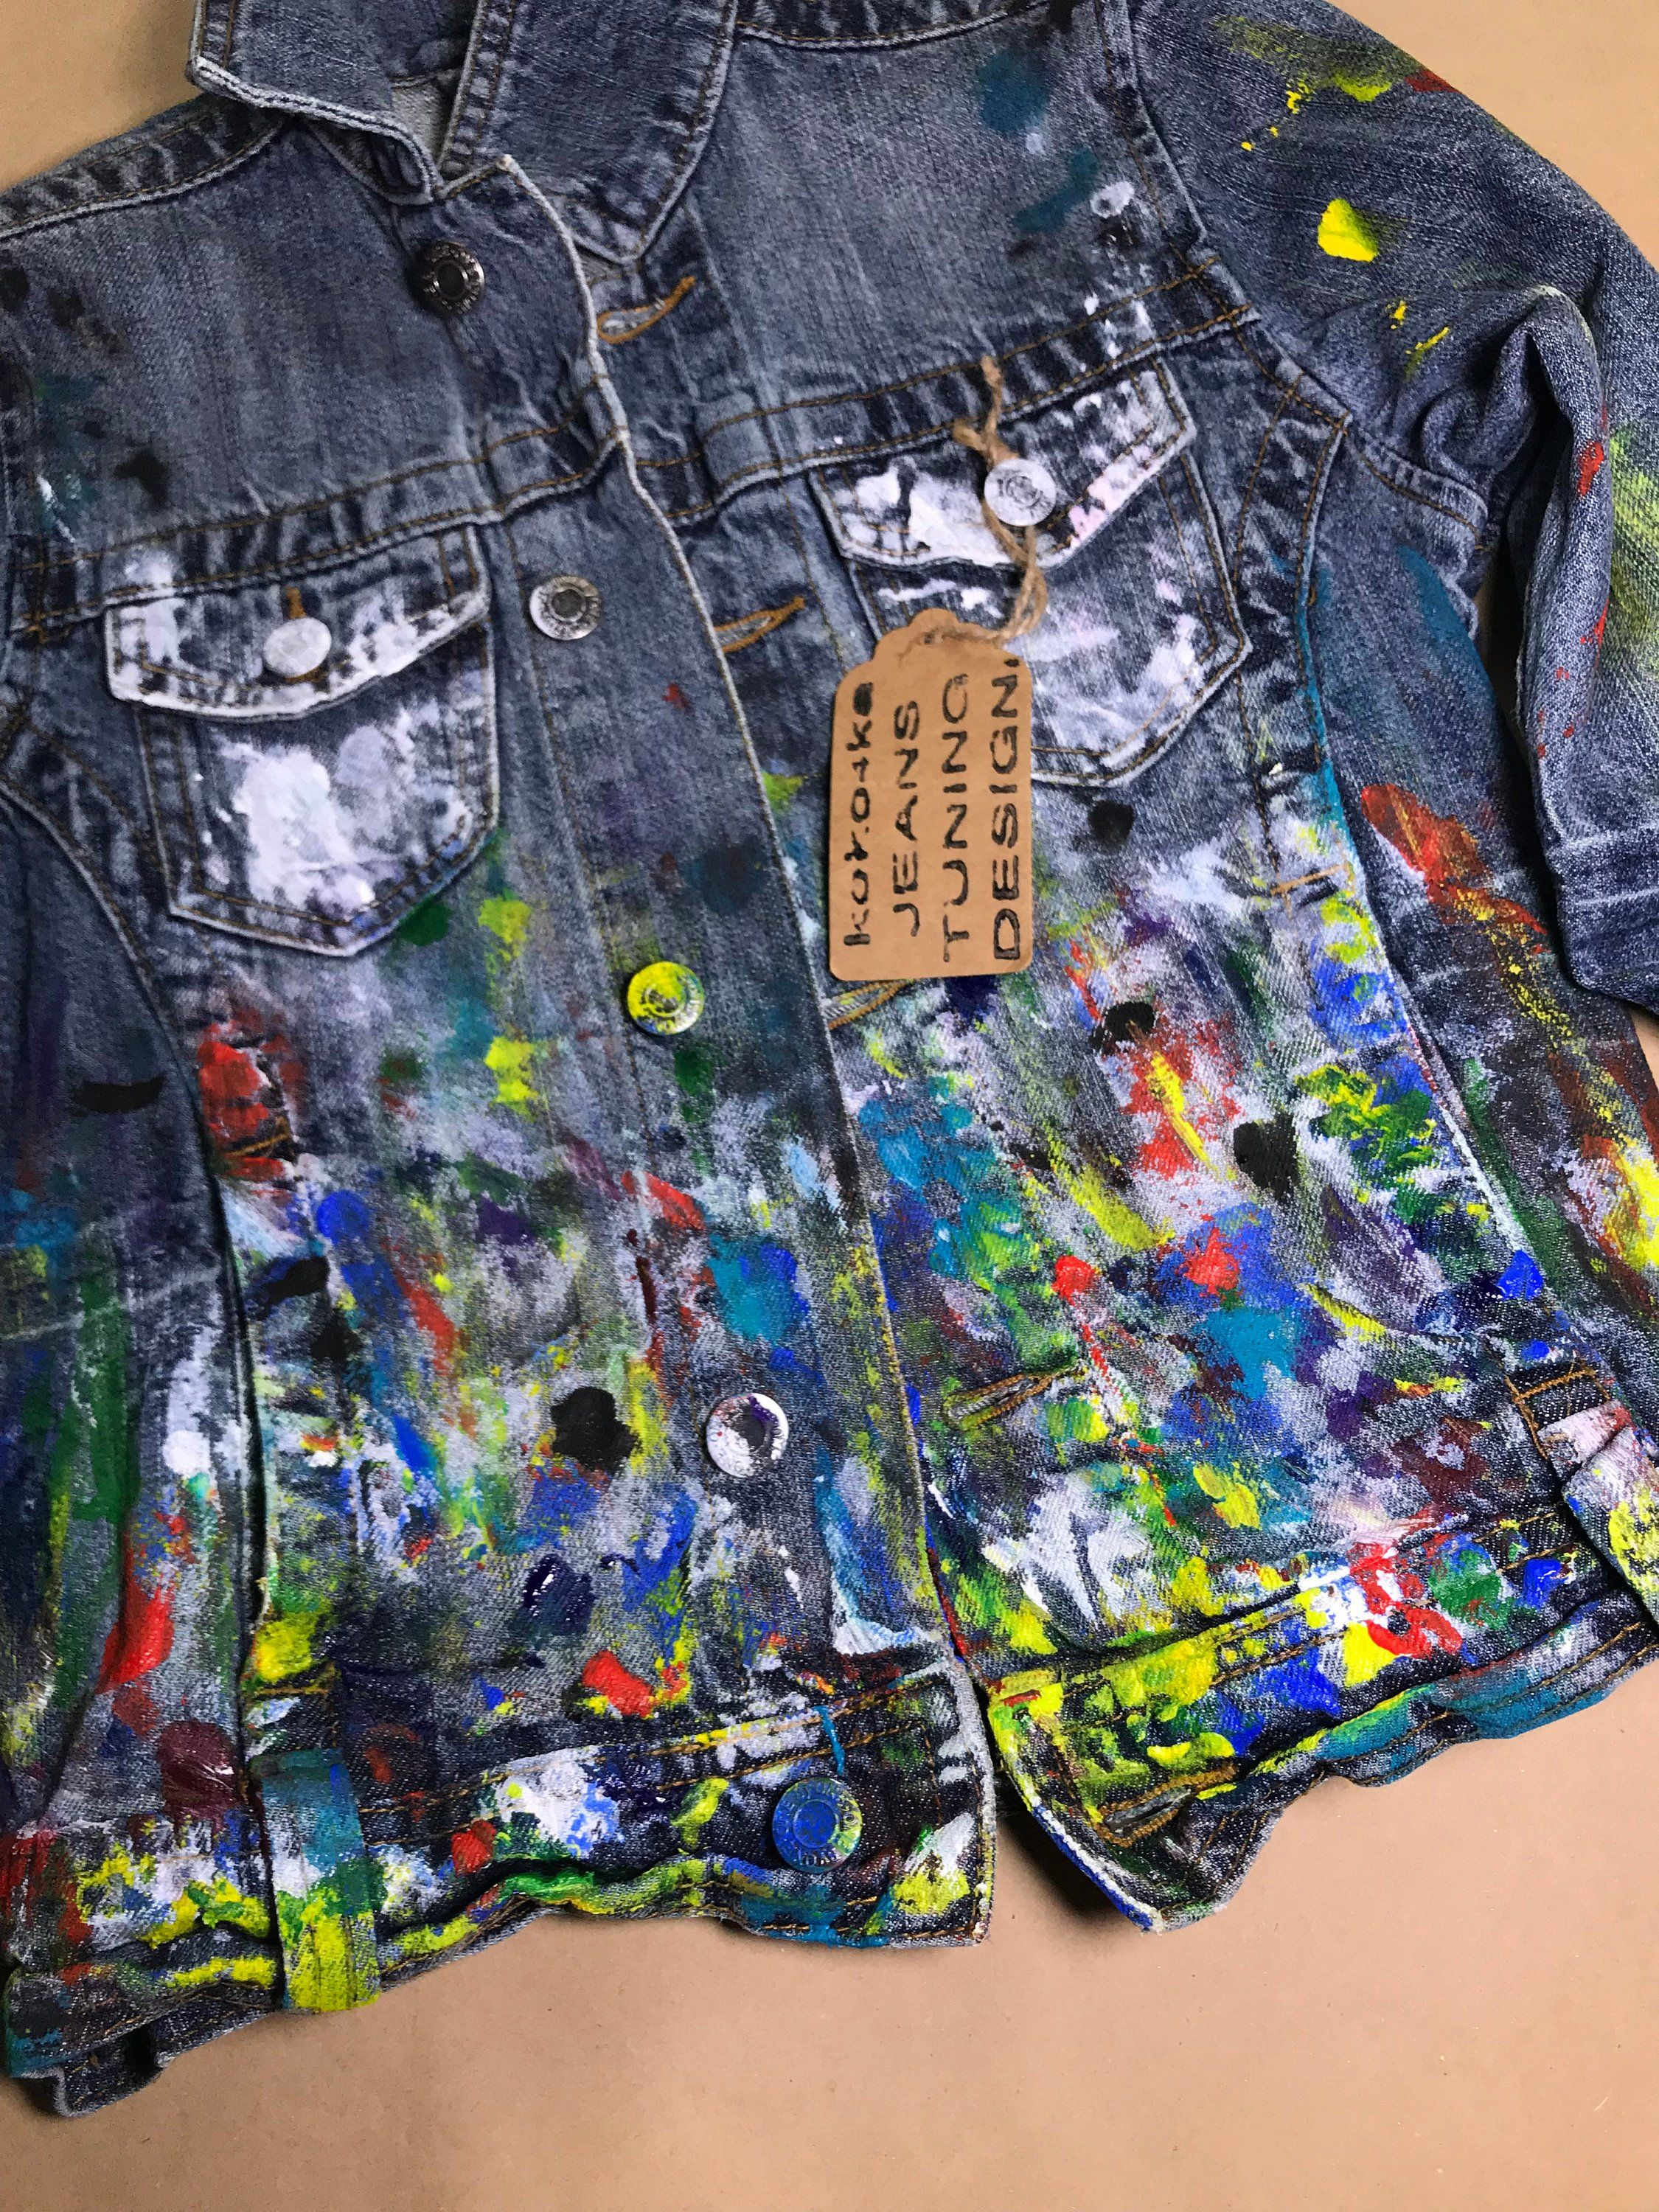 Children S Jeans Jacket Denim Jacket Festive Clothes Etsy In 2021 Festival Outfits Hand Painted Denim Jacket Embellished Denim Jacket [ 3000 x 2250 Pixel ]